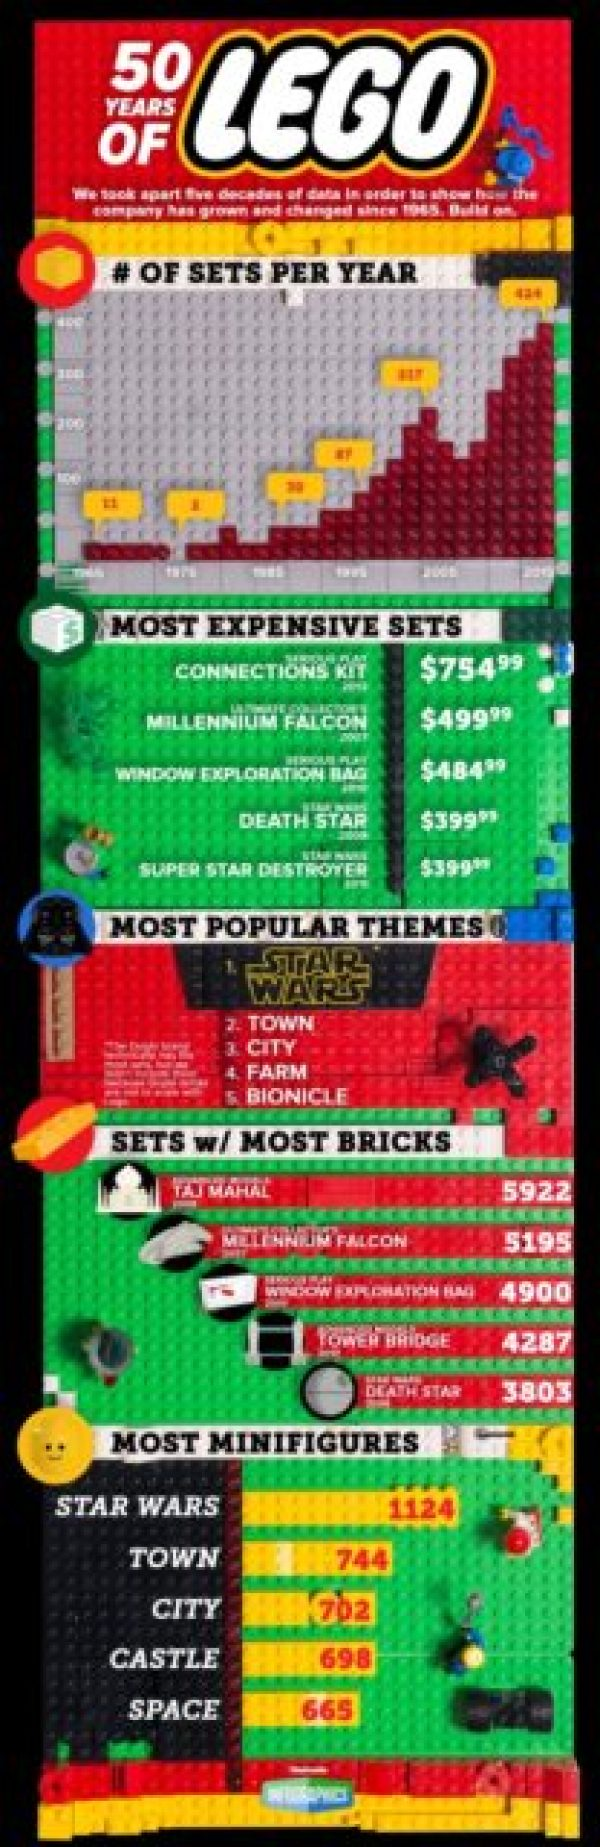 lego-facts - Copy